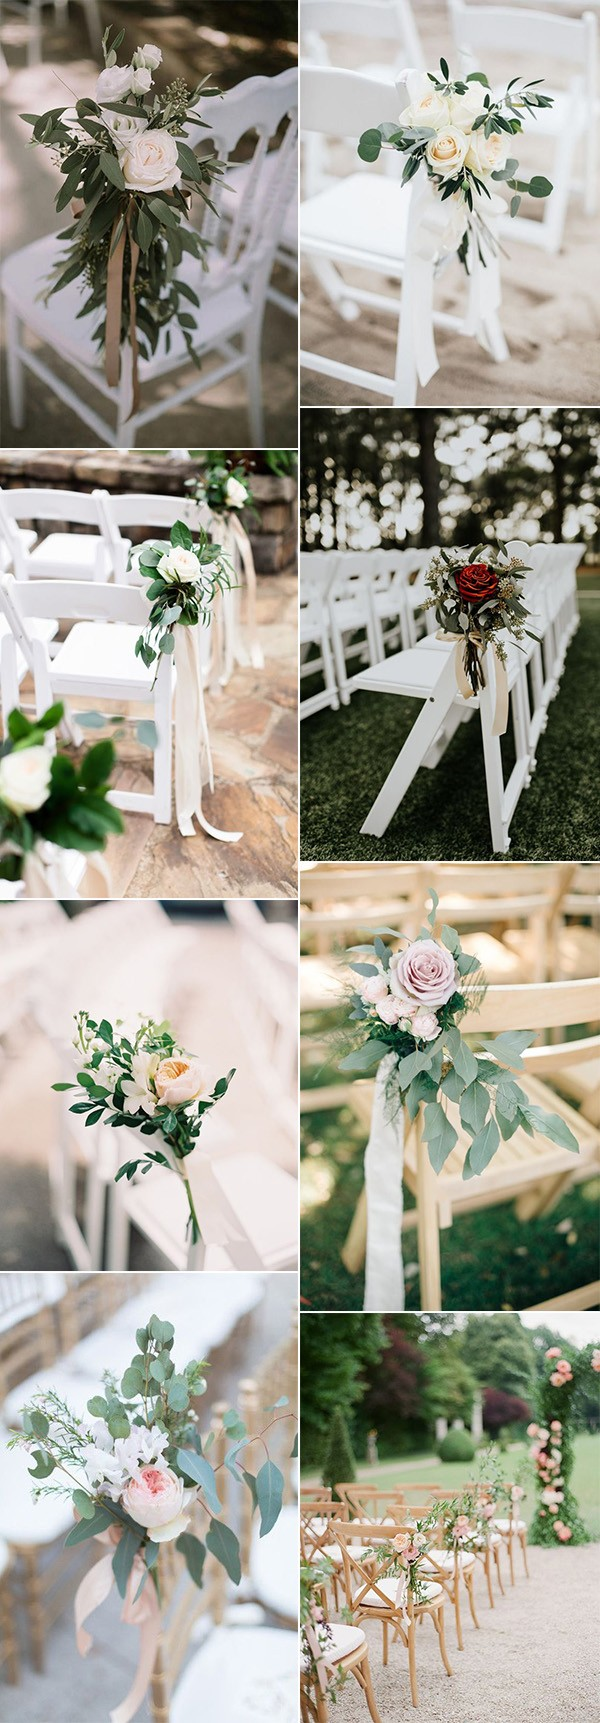 simple and elegant outdoor wedding aisle decoration ideas with floral